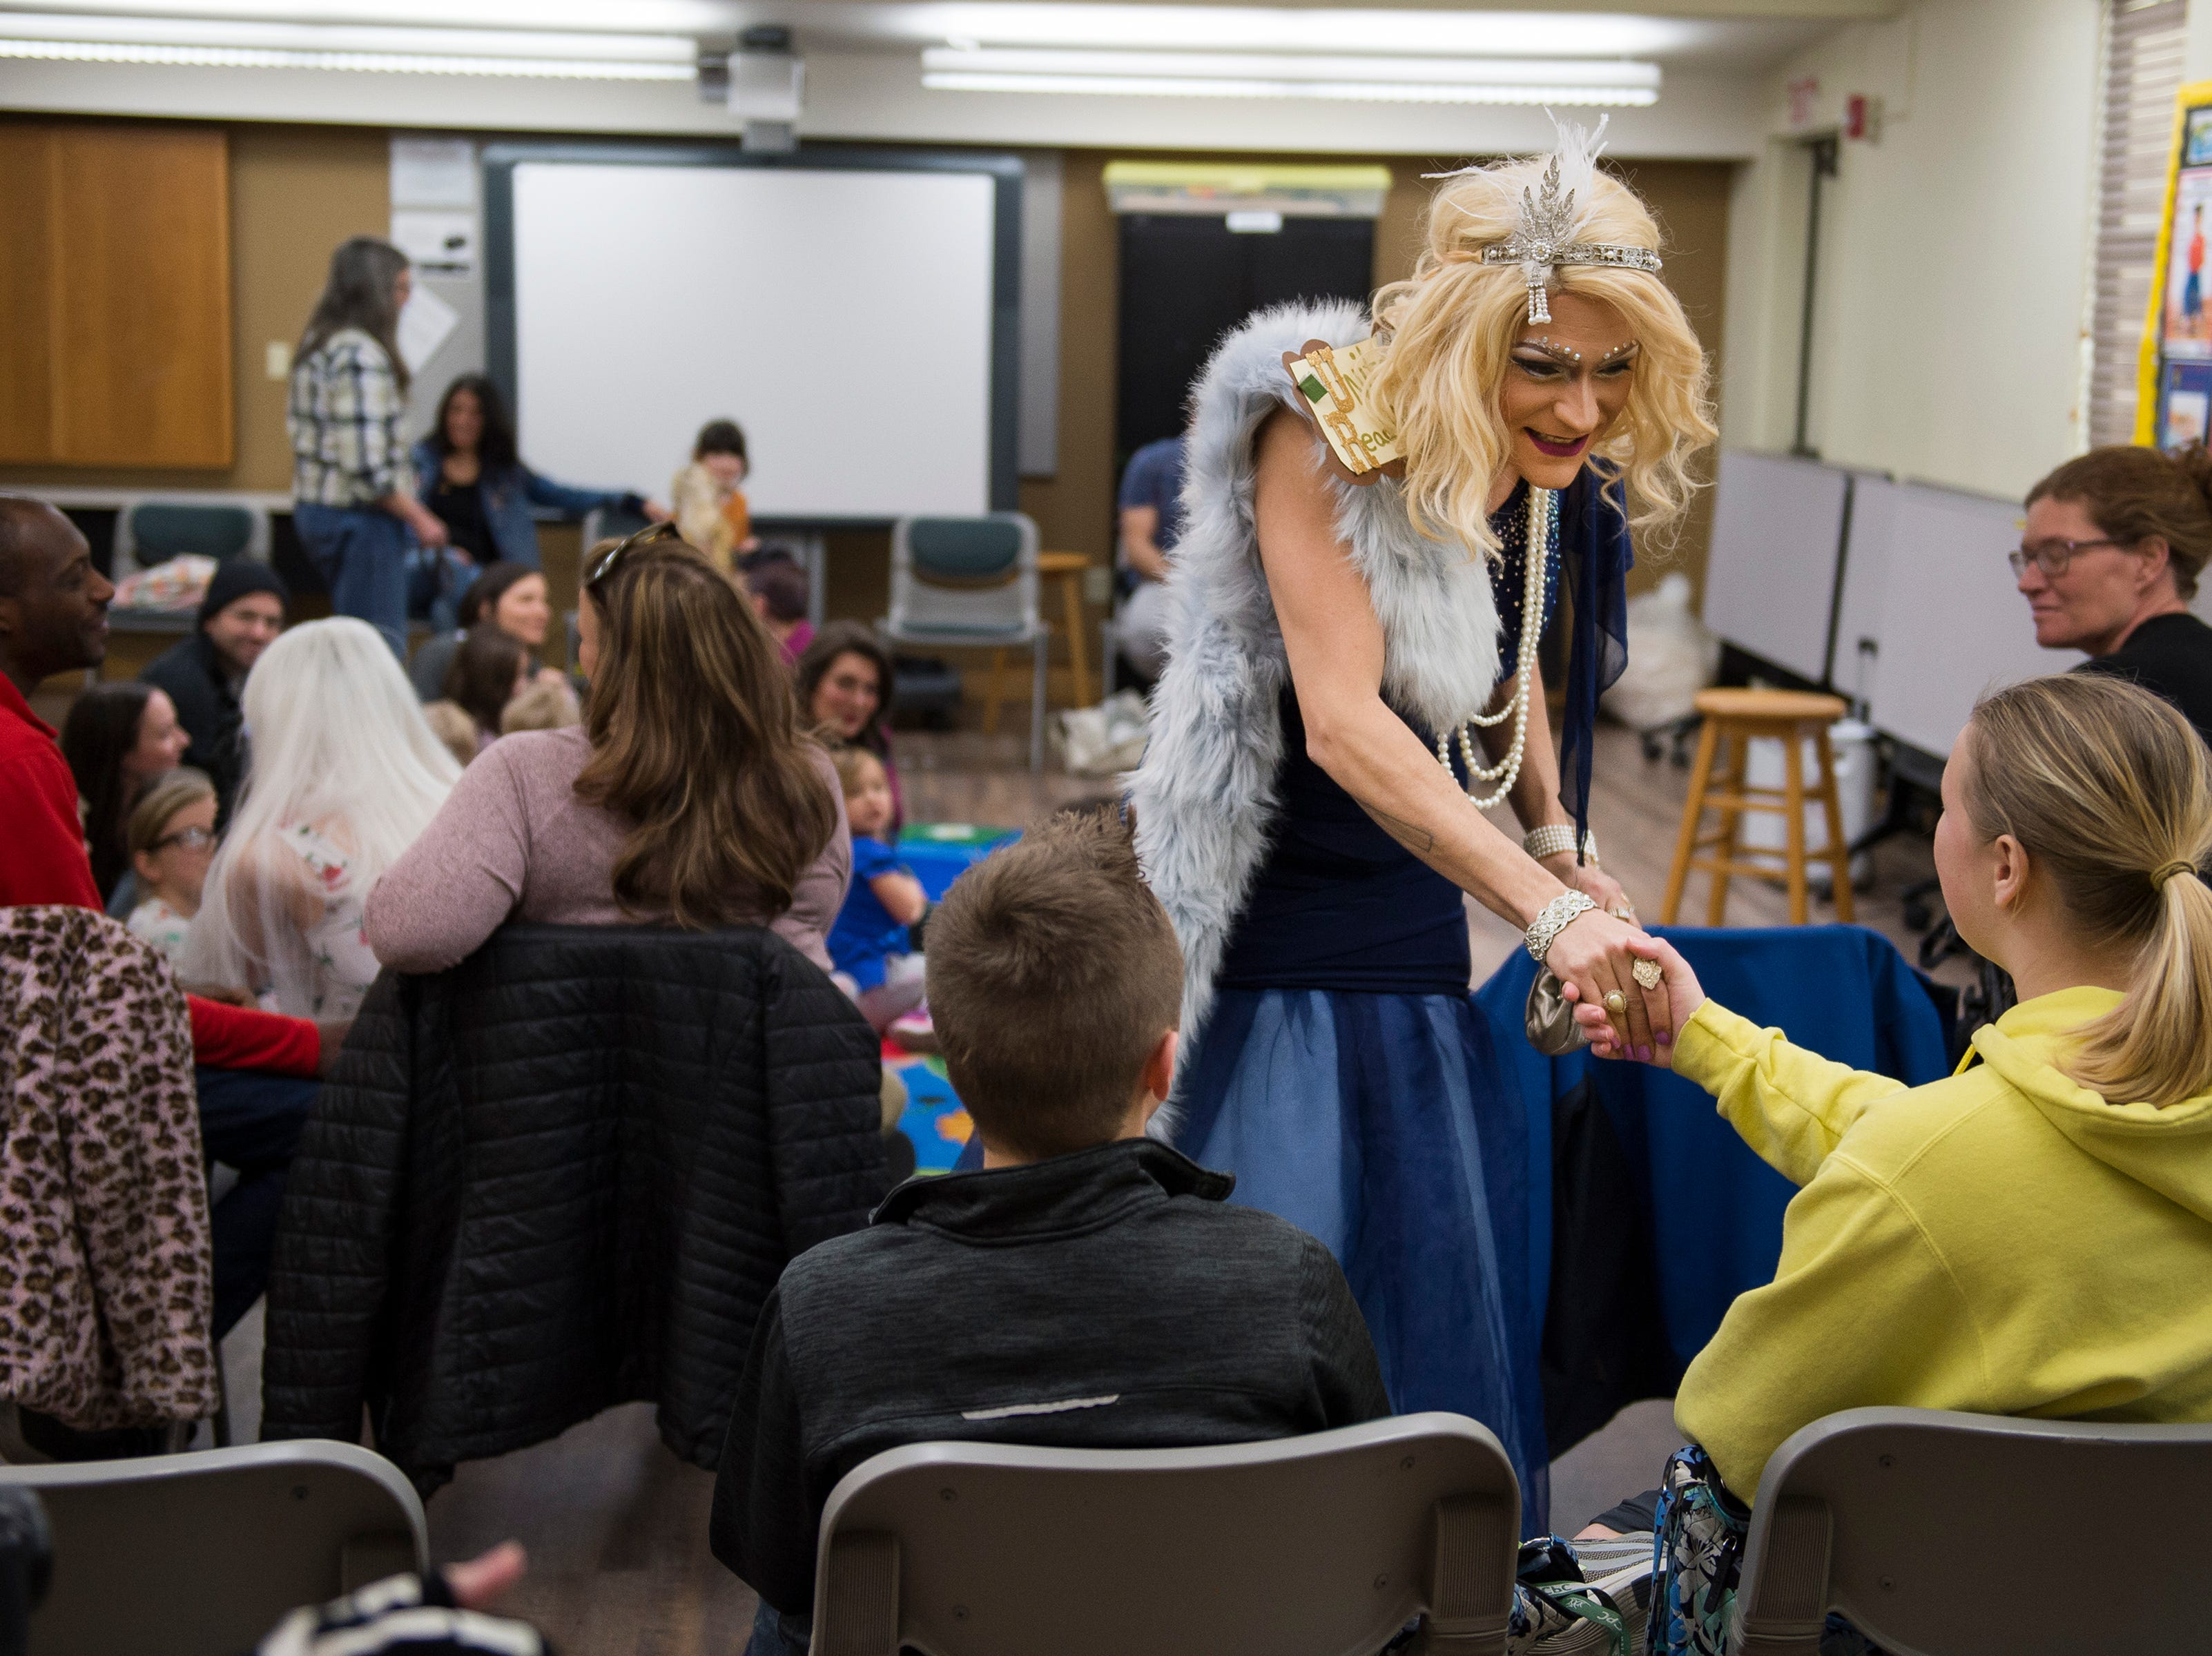 Drag queen Unita ReadMoore greets ticket-holders before Drag Queen Story Hour on Saturday, Jan. 12, 2019, at the Clearview Public Library in Windsor, Colo. Drag Queen Story Hour is a program put on by SPLASH, an LGBTQ+ youth outreach organization.